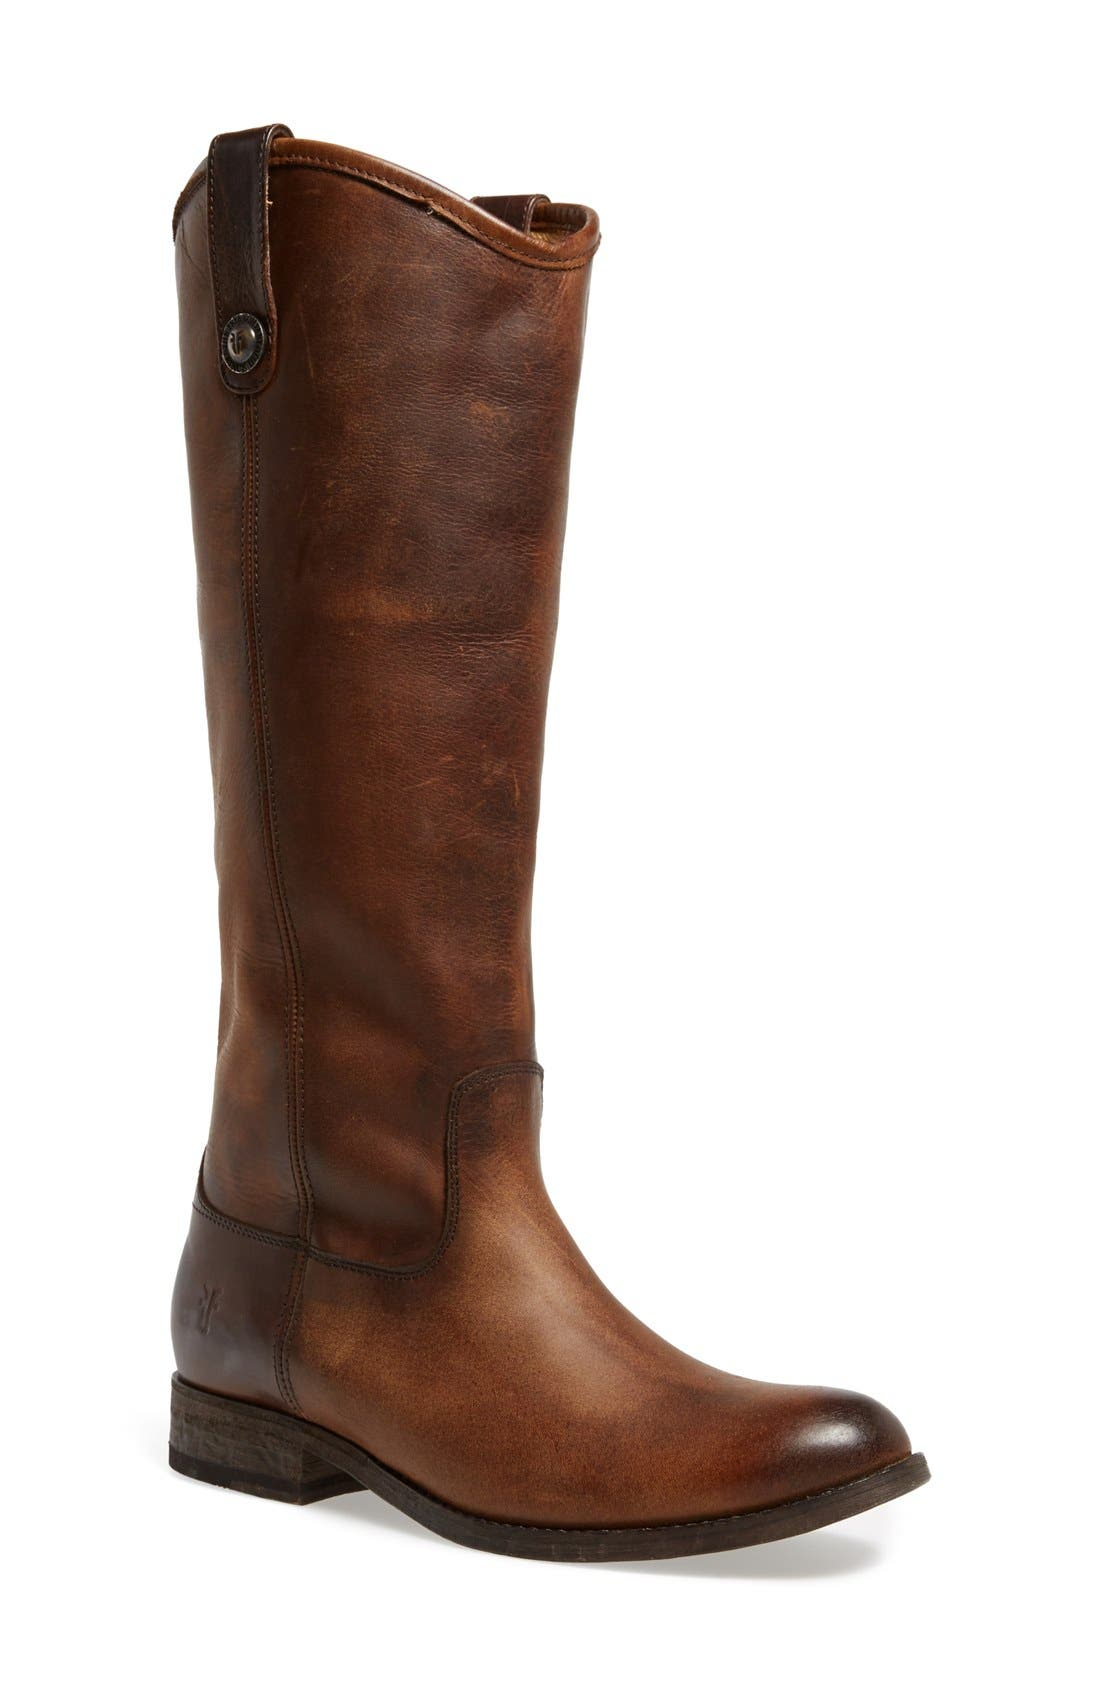 Alternate Image 1 Selected - Frye 'Melissa Button' Leather Riding Boot (Women)